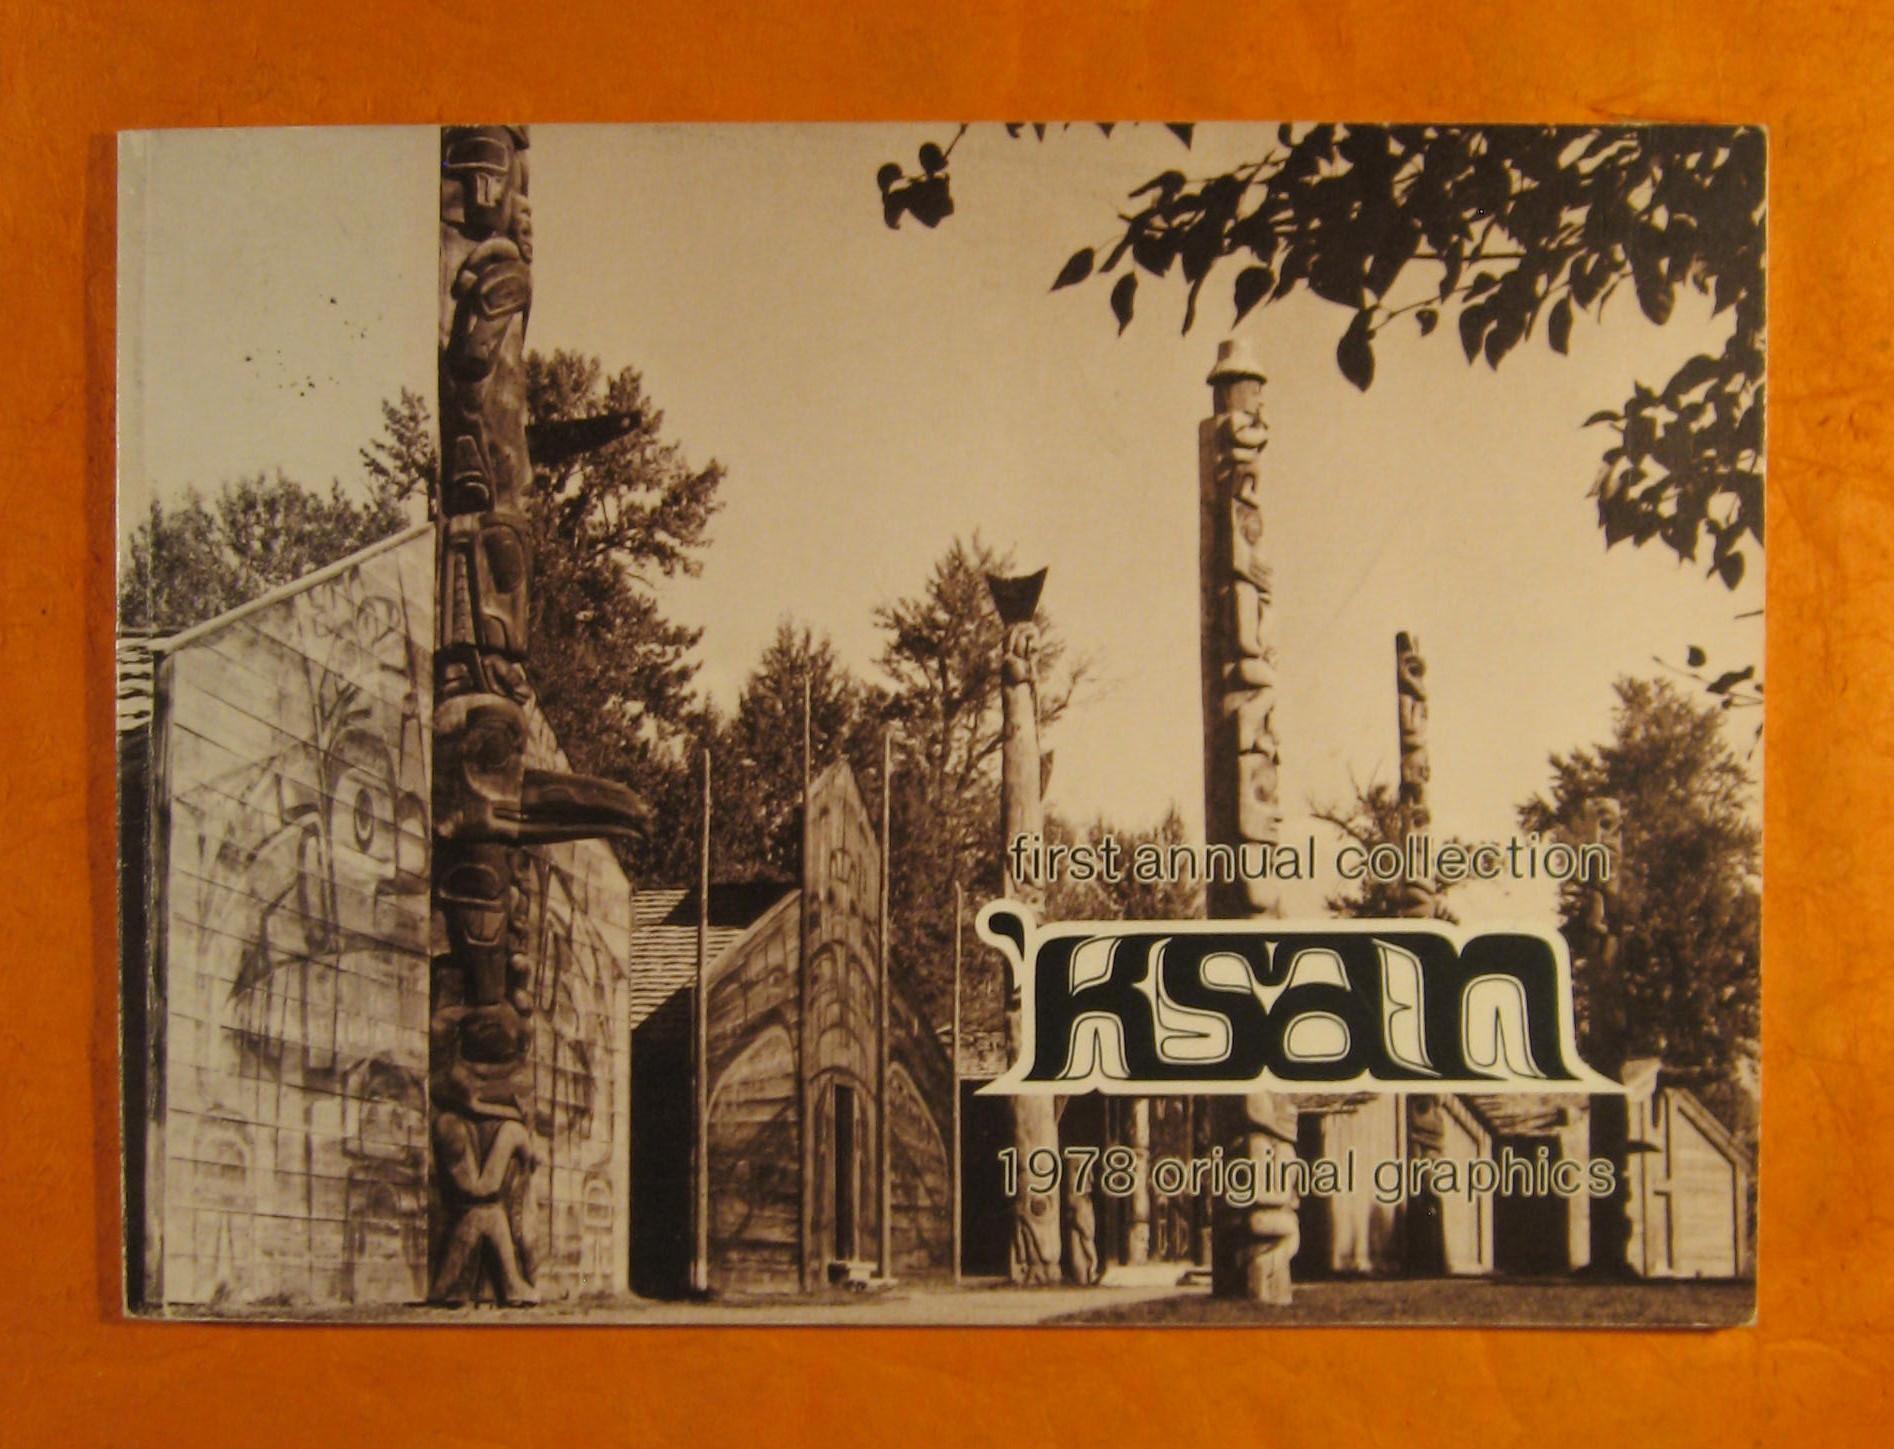 Image for First Annual Collection:  'Ksan, 1978 Original Graphics